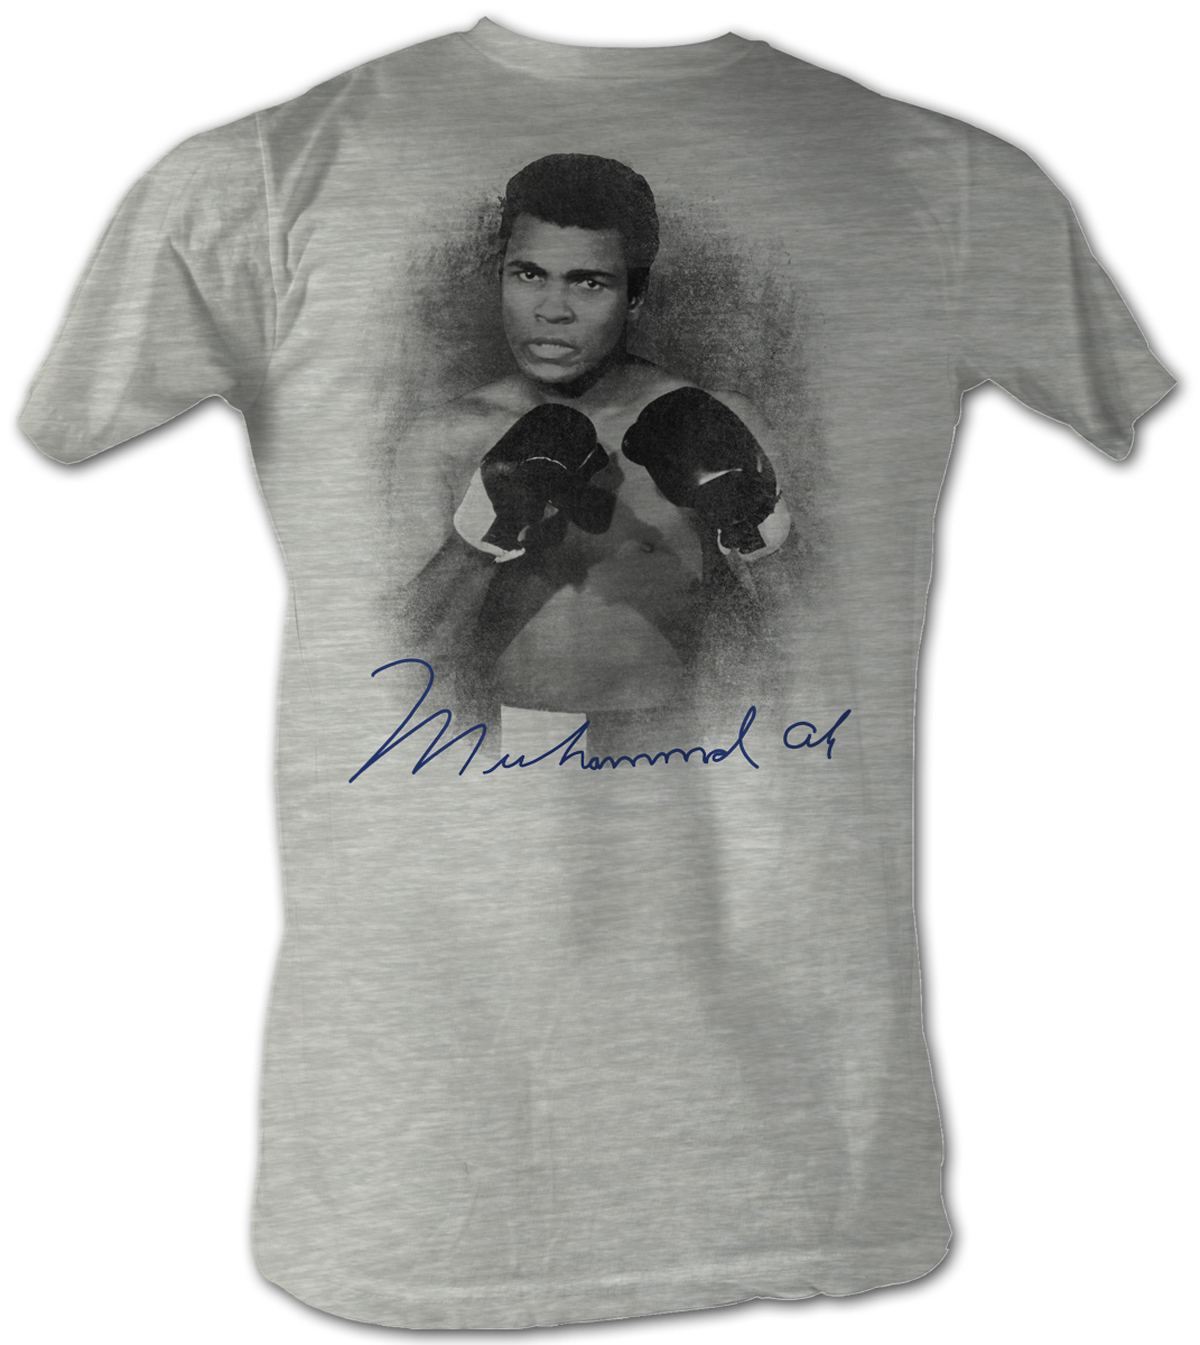 muhammad ali t shirt profile adult heather grey tee shirt. Black Bedroom Furniture Sets. Home Design Ideas